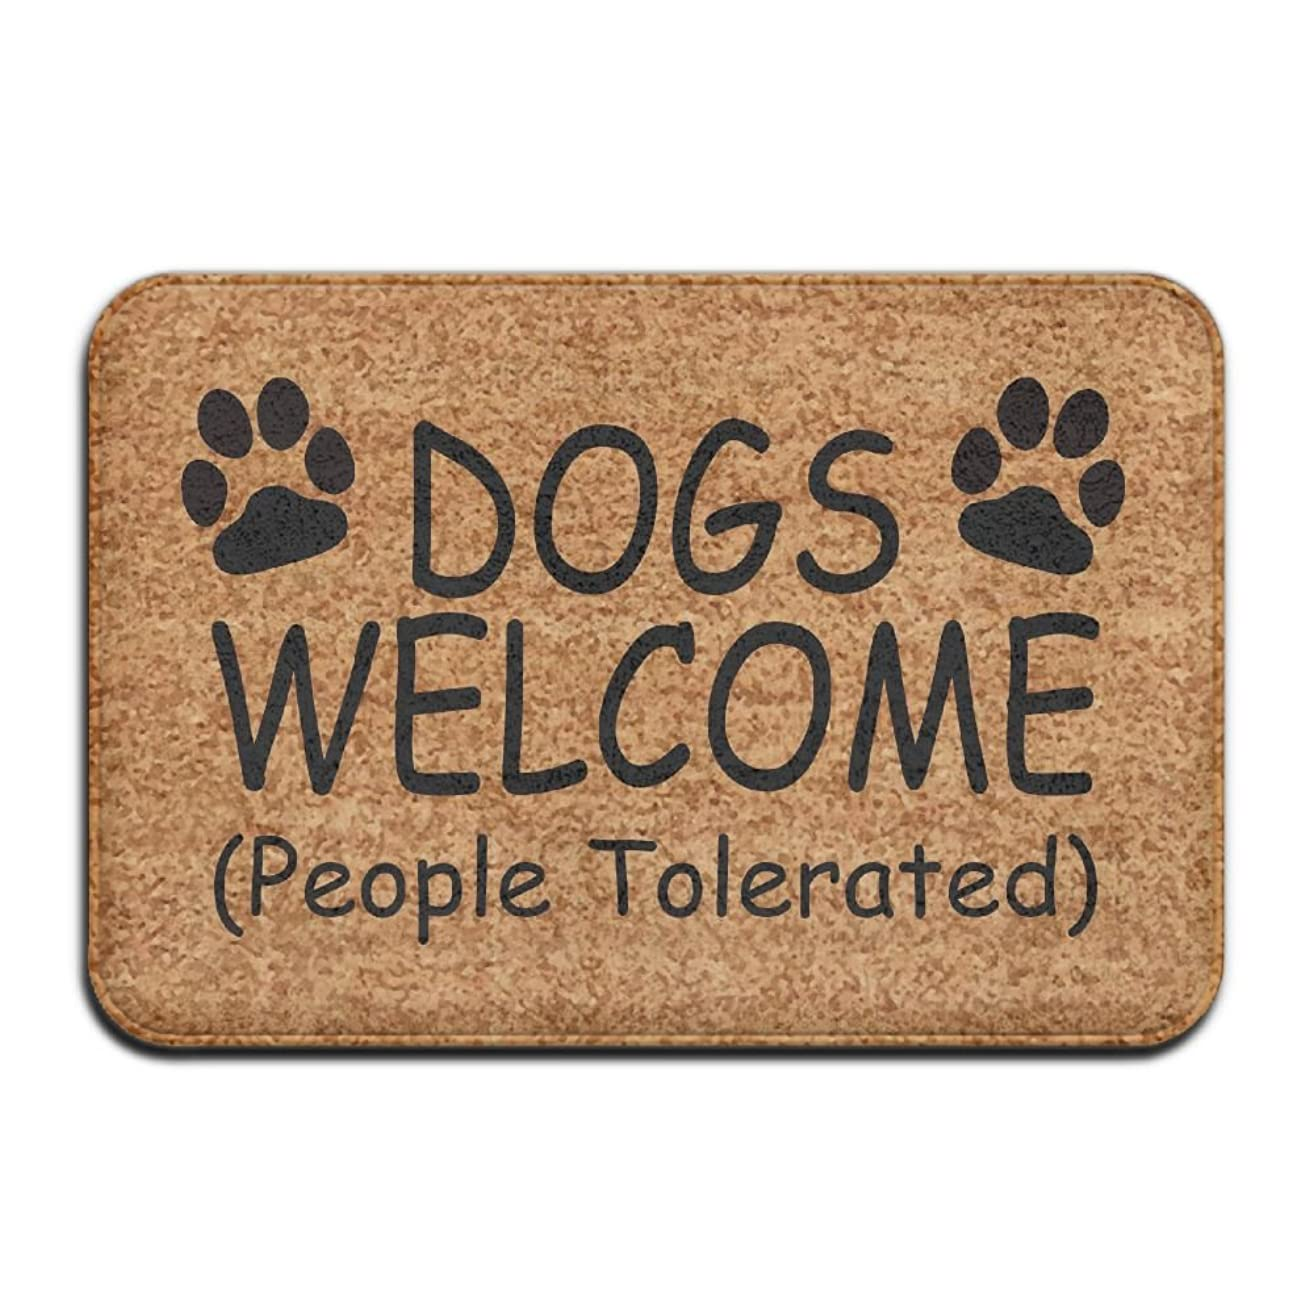 Dogs Cats Welcome (People Tolerated) Vintage 15.7 X 23.6 In Absorbent Non Slip Floor Rug Coral Carpet